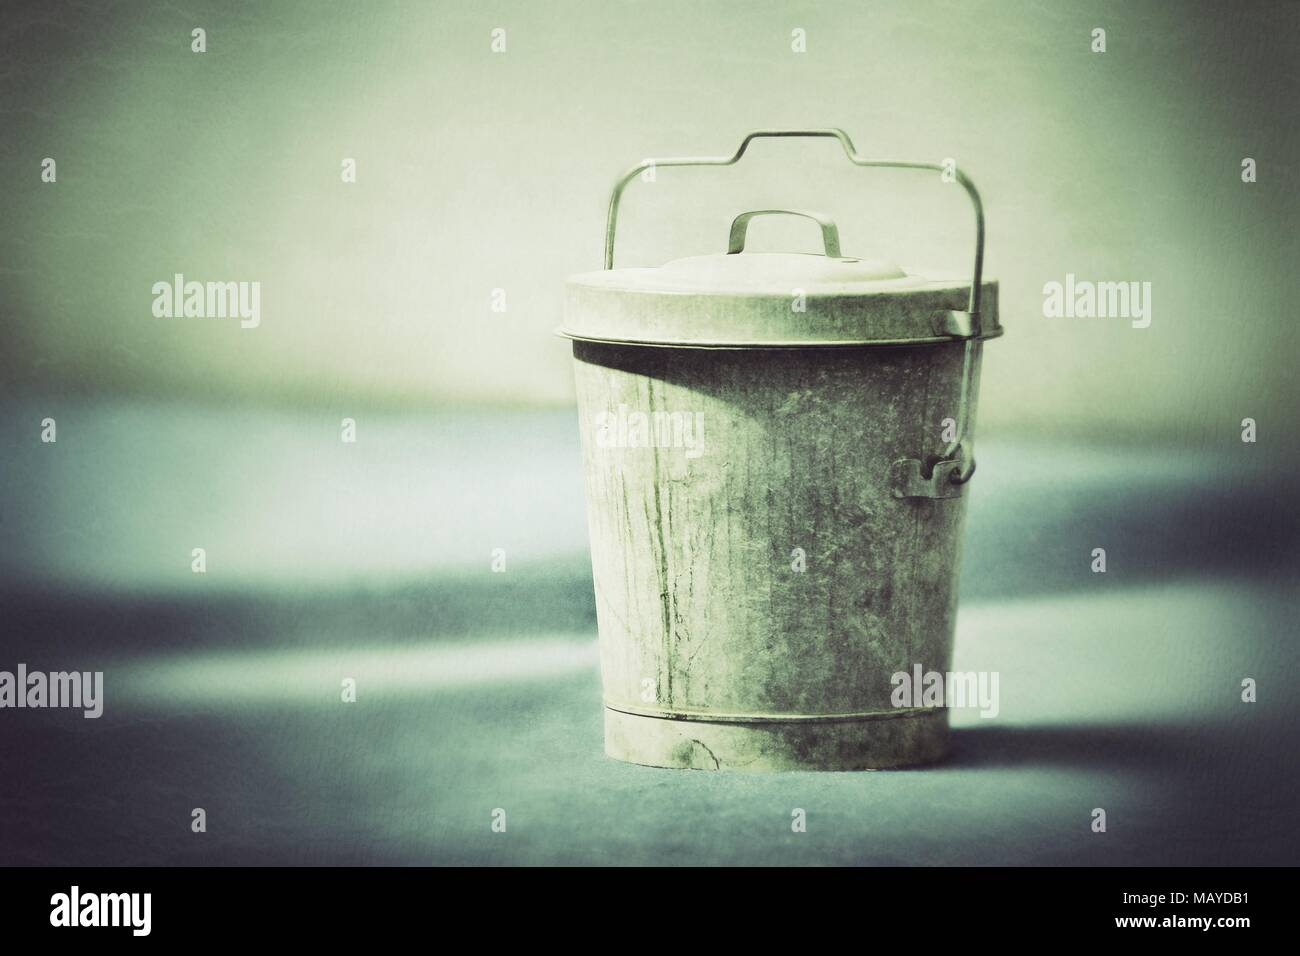 Rustic old fashioned bucket with lid grunge effect - Stock Image